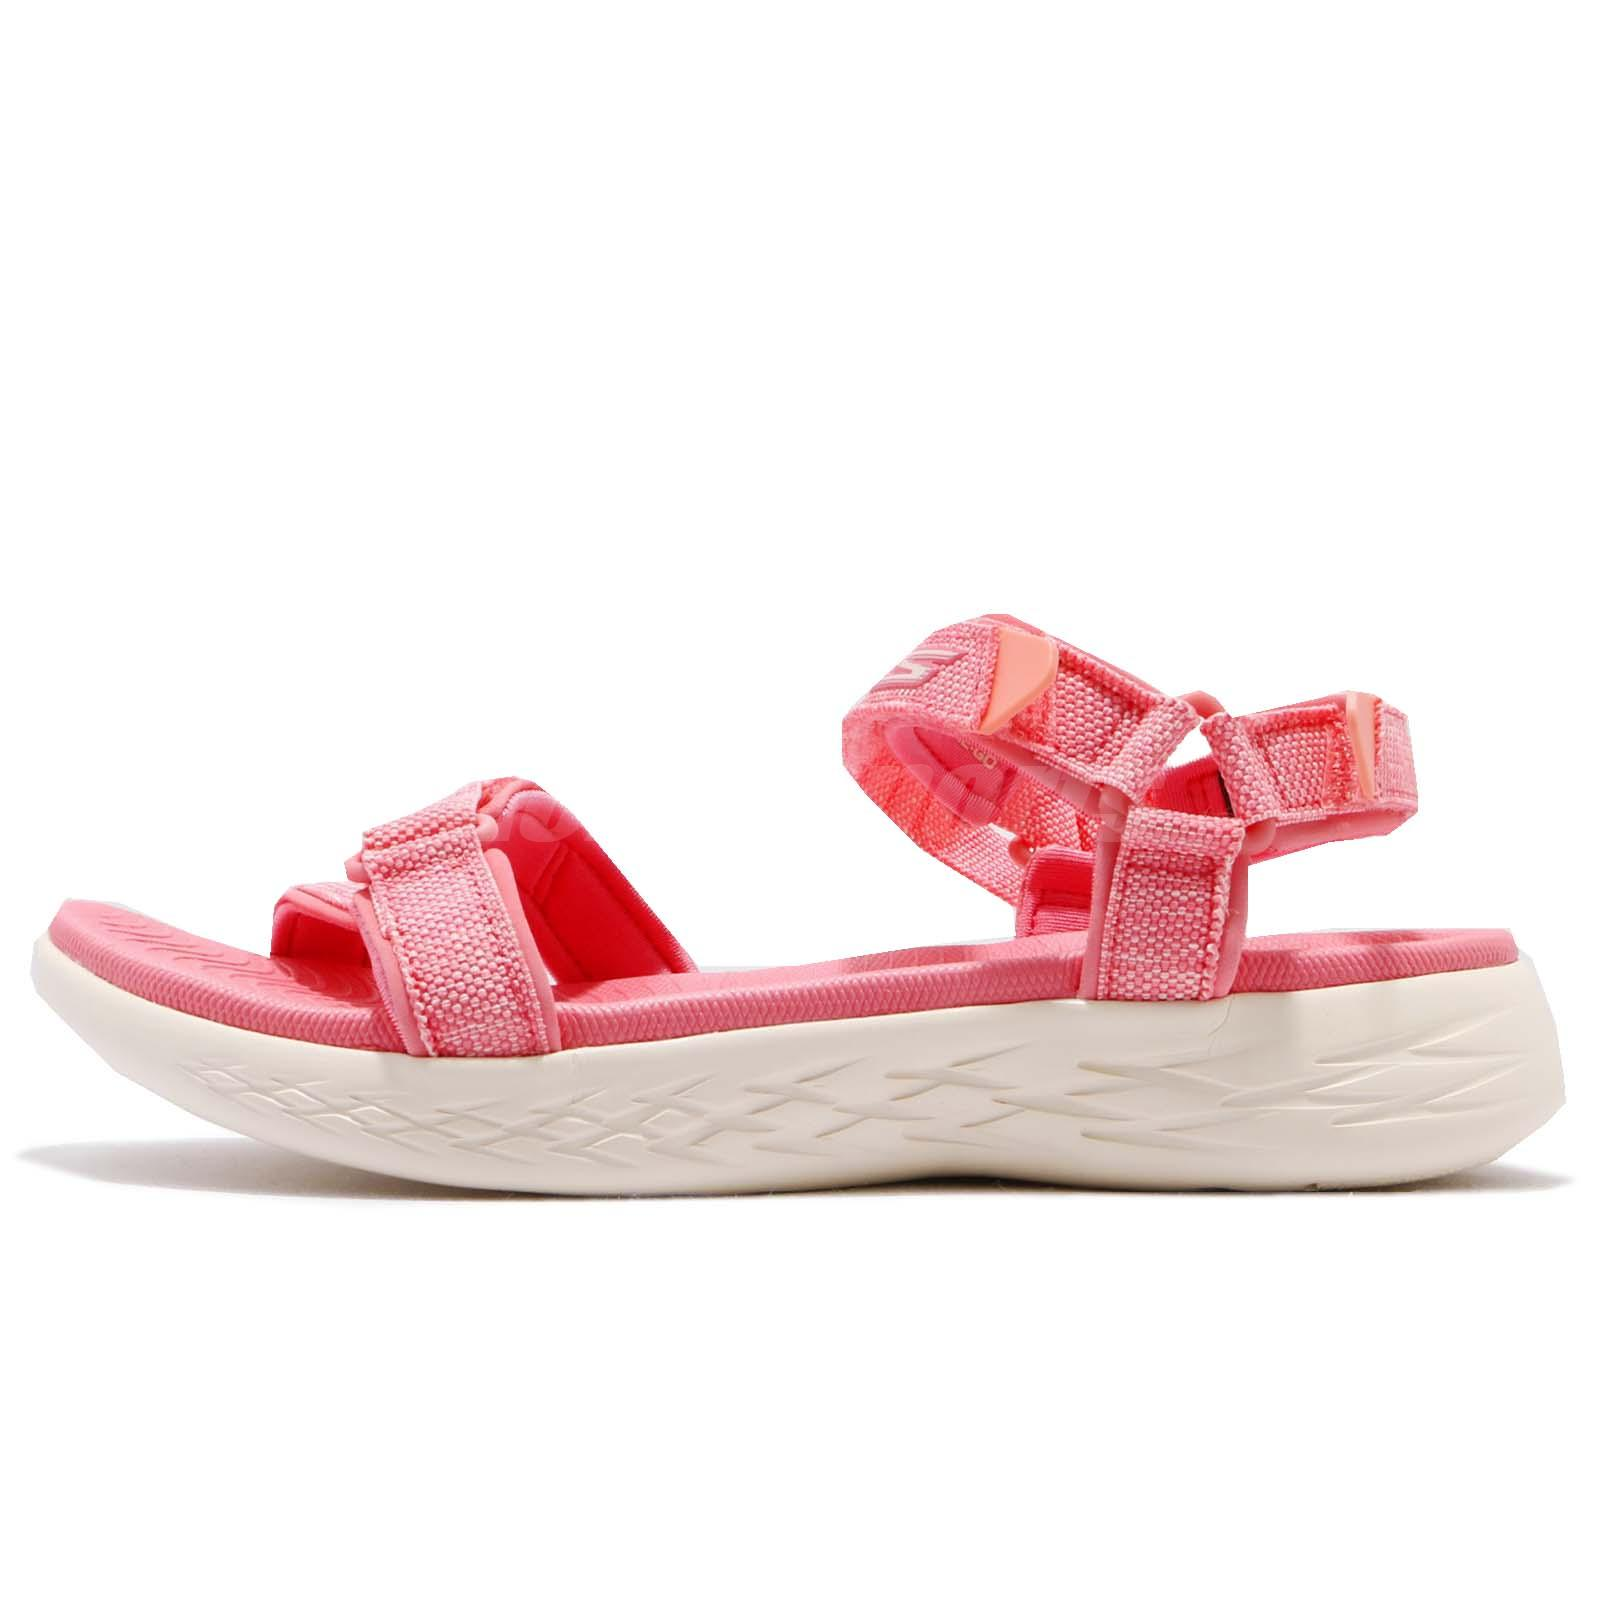 ca7b9321d8b9 Skechers On-The-Go 600-Radiant Pink White Women Sandal Slippers 15315-PNK